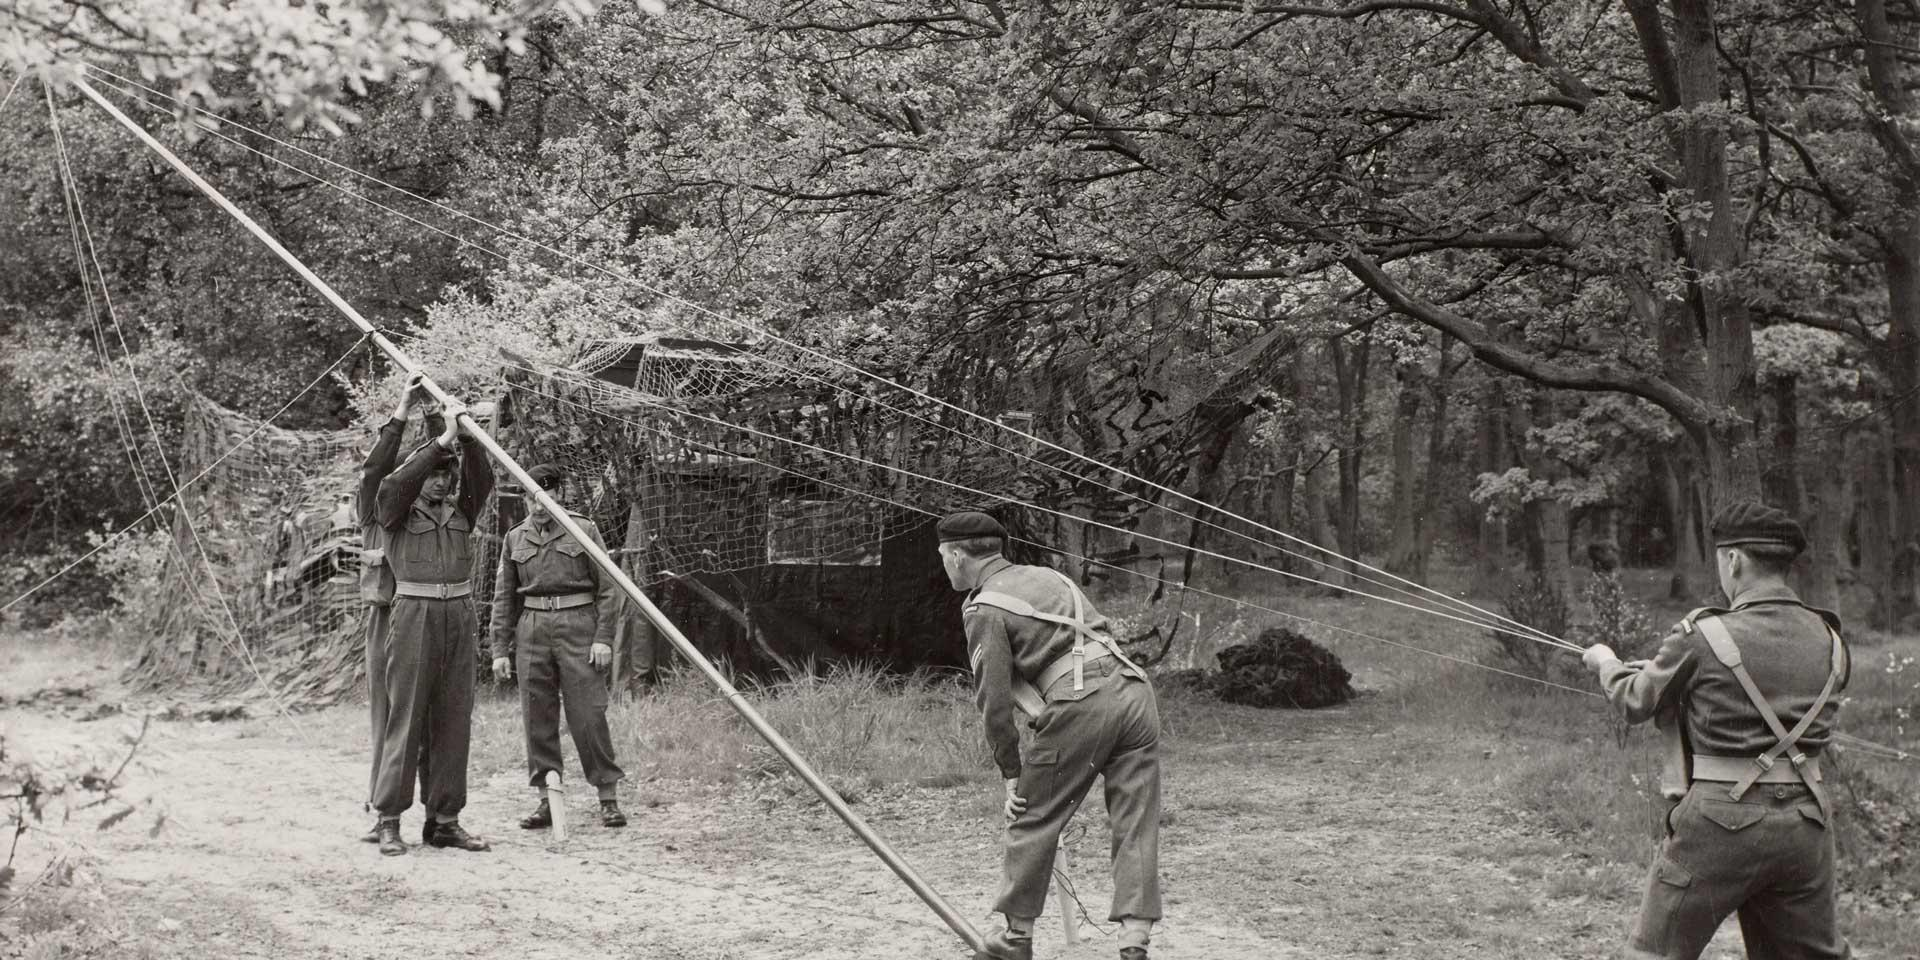 Royal Corps of Signals soldiers erect a radio aerial, c1955